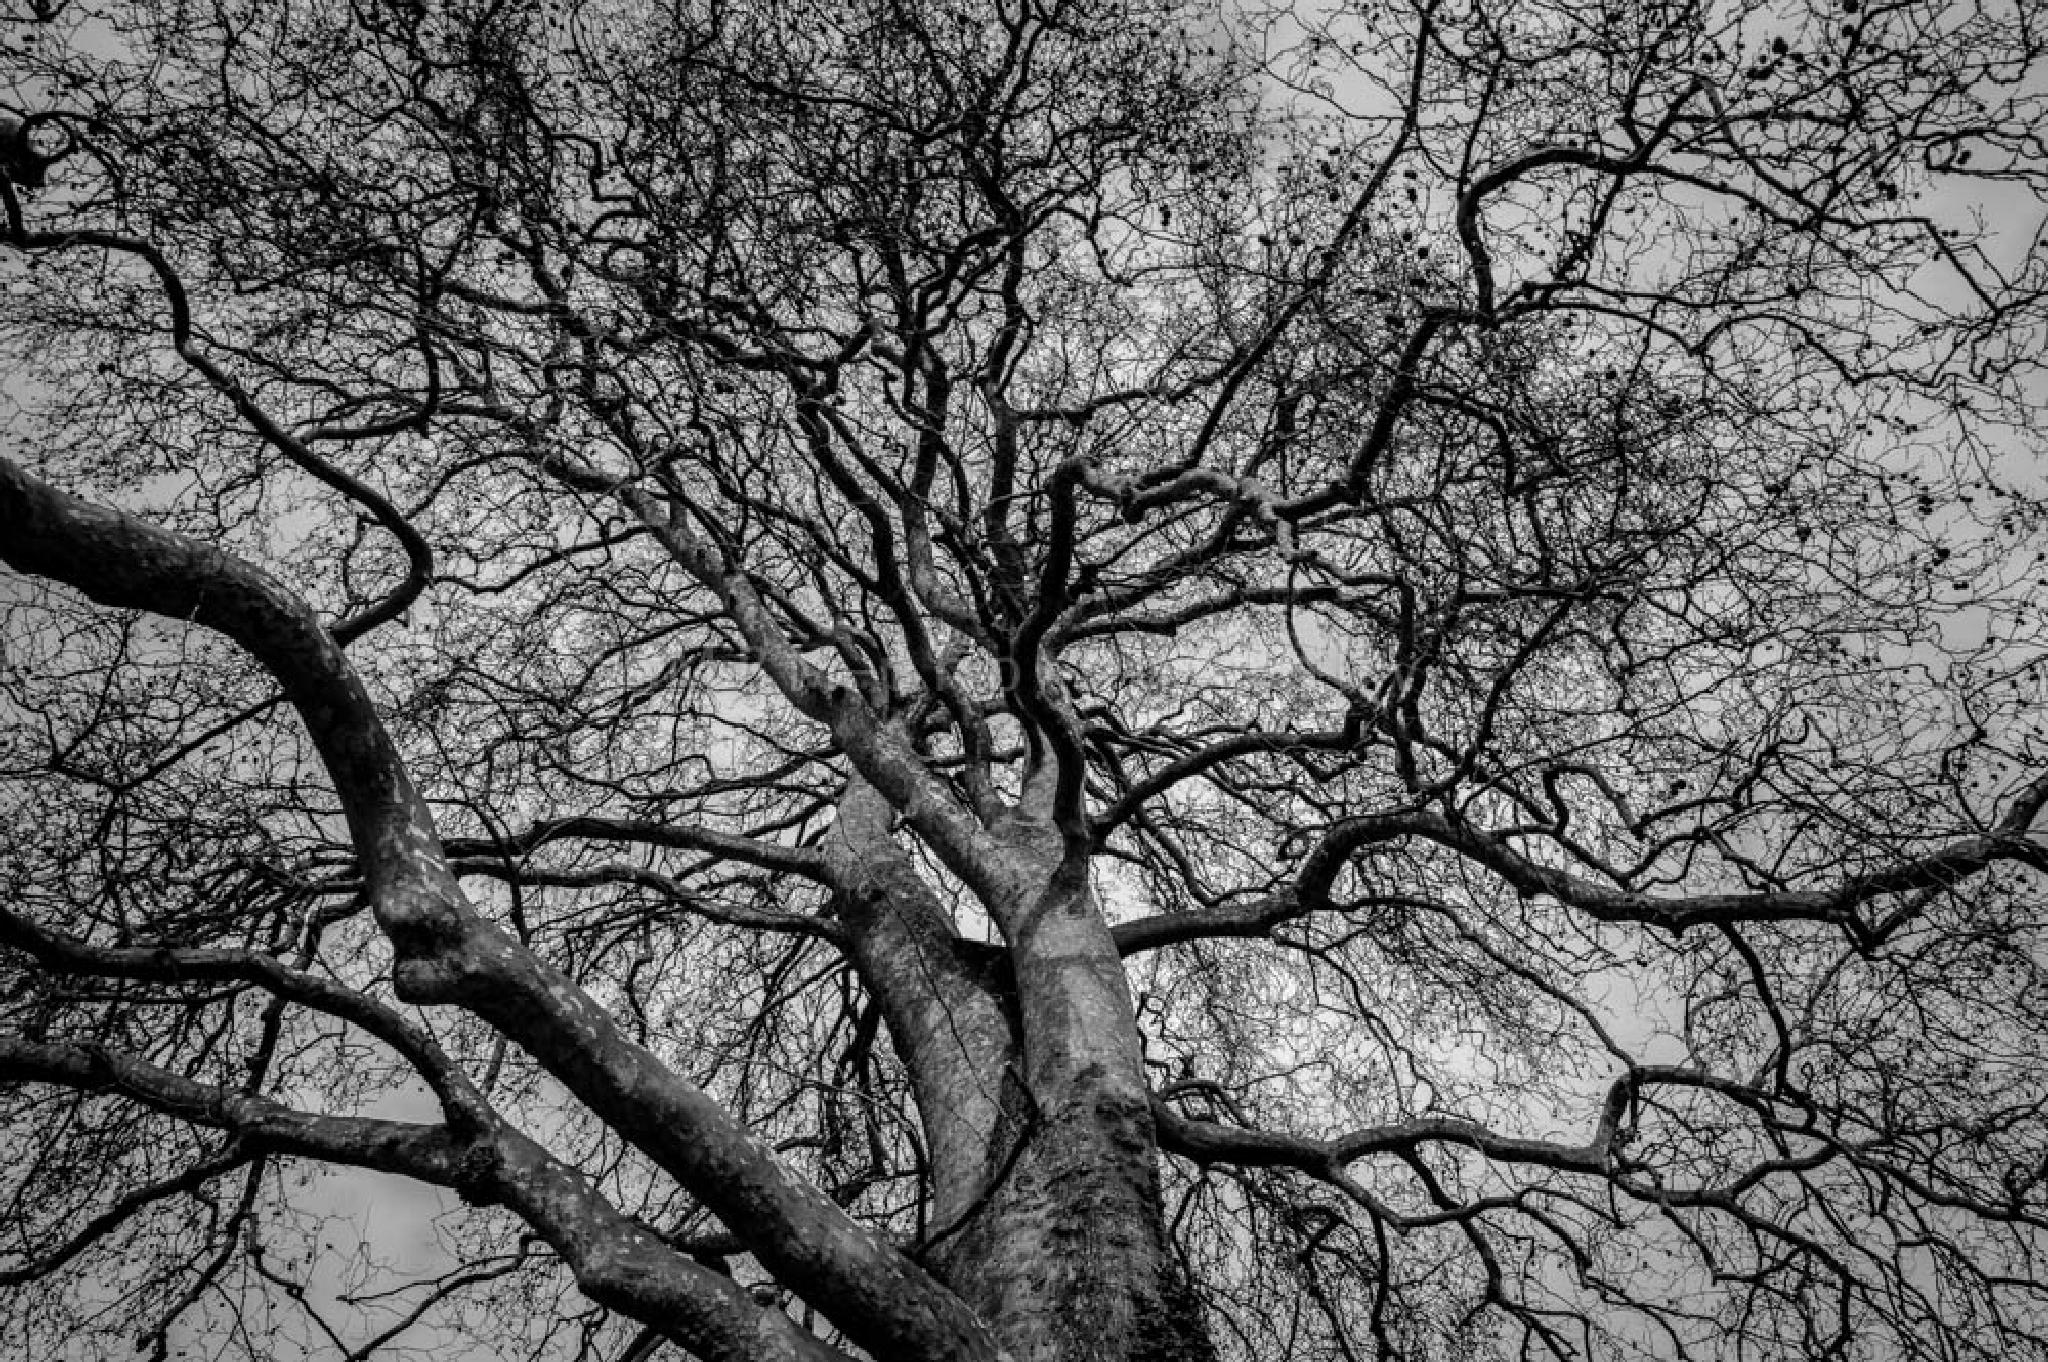 Branching Out by Michel B